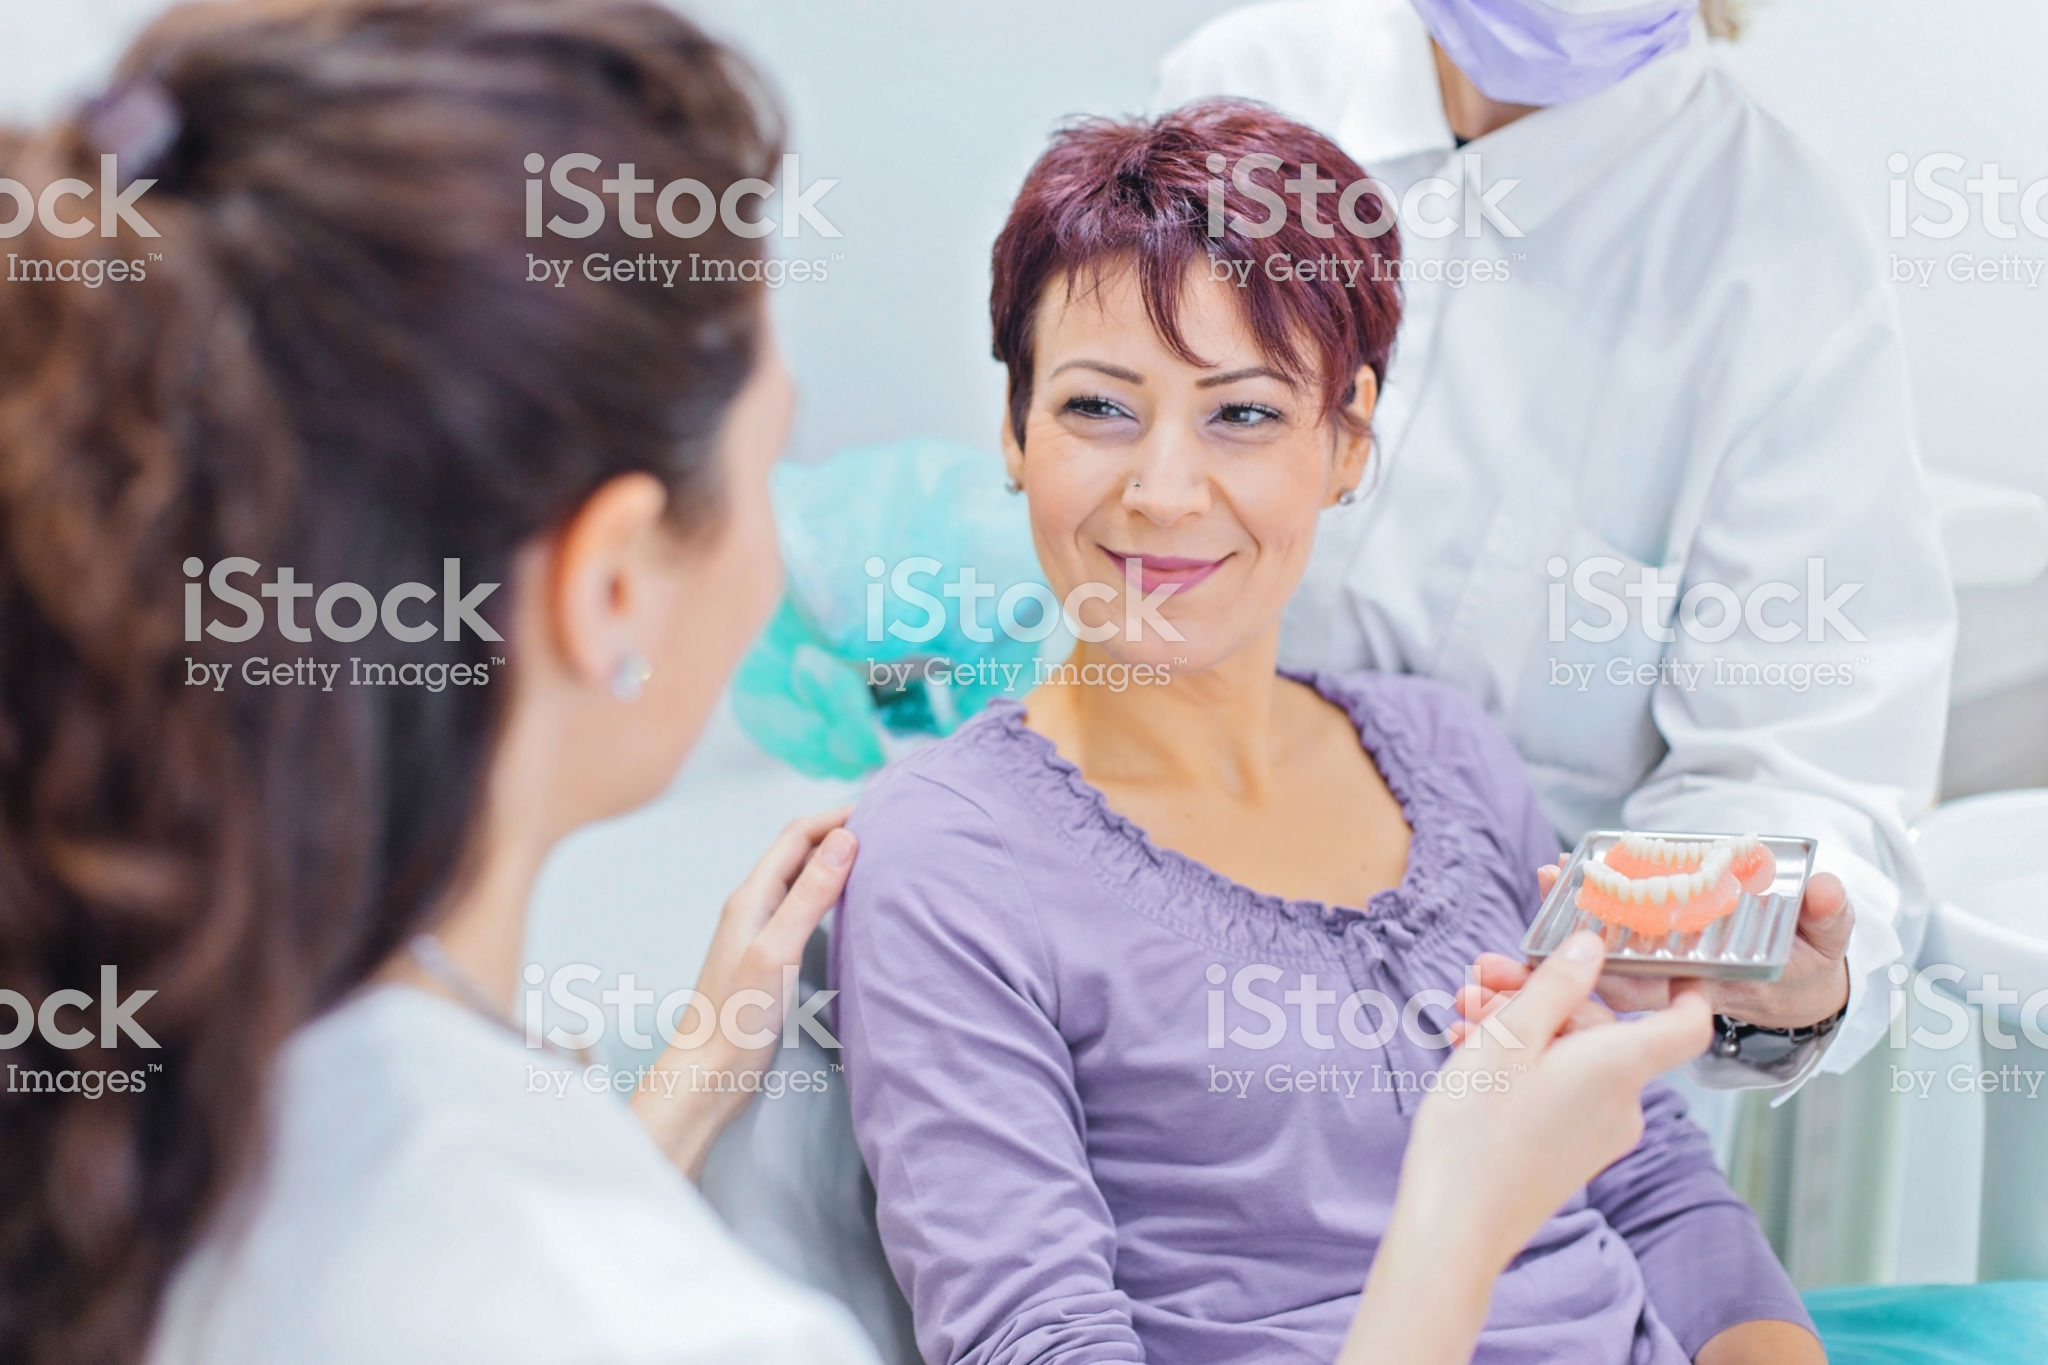 Female dentist talking to a patient and showing her teeth dentures